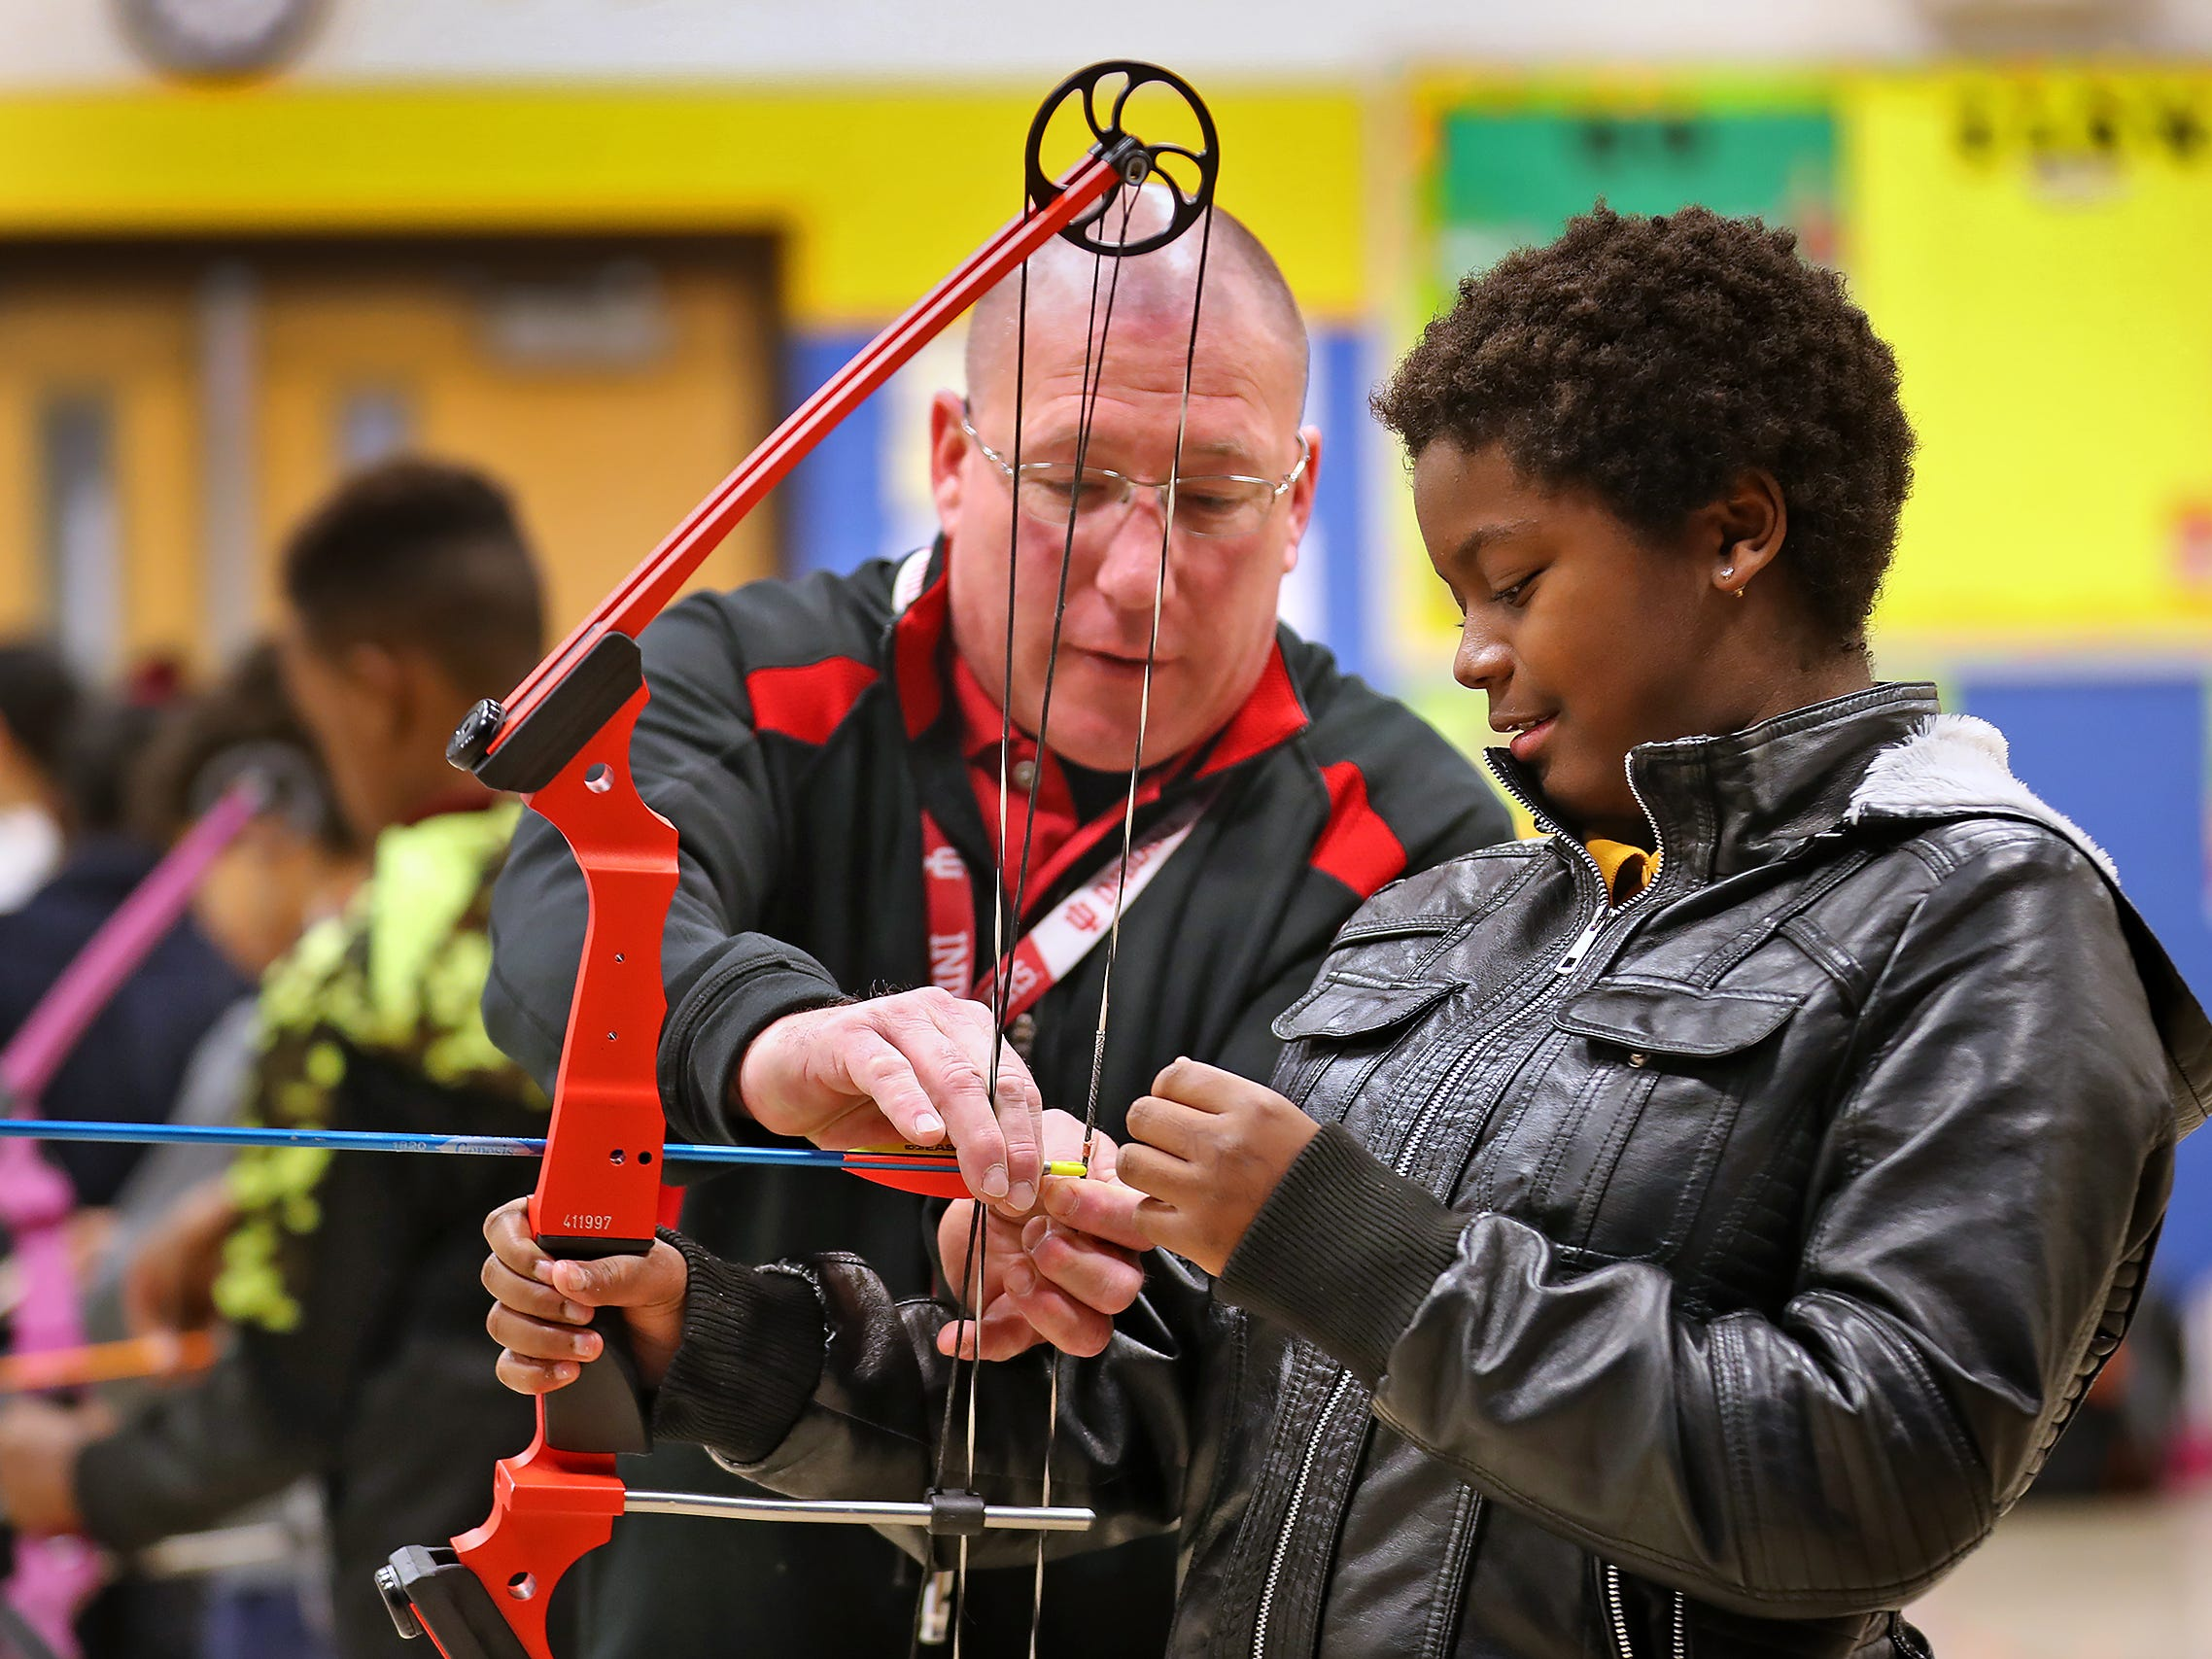 William Crawford, left, gives instruction to Nikita Barnes during archery class at Lew Wallace Elementary IPS 107, Thursday, Dec. 20, 2018.